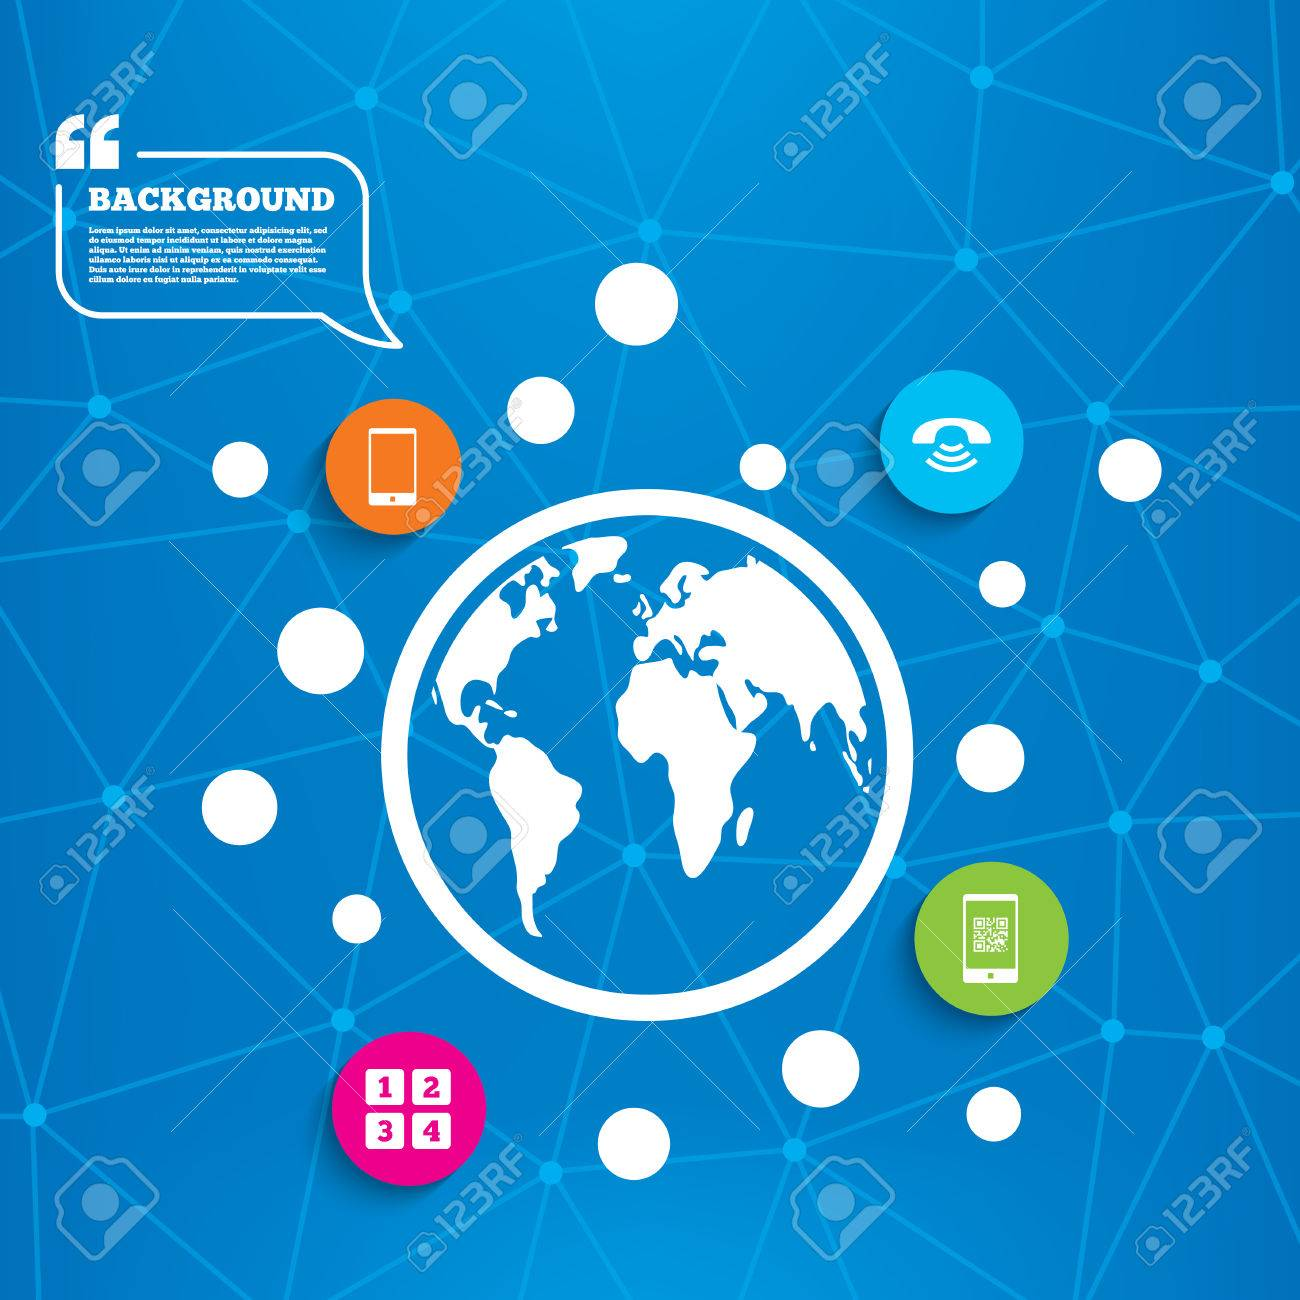 Abstract world globe  Phone icons  Smartphone with Qr code sign